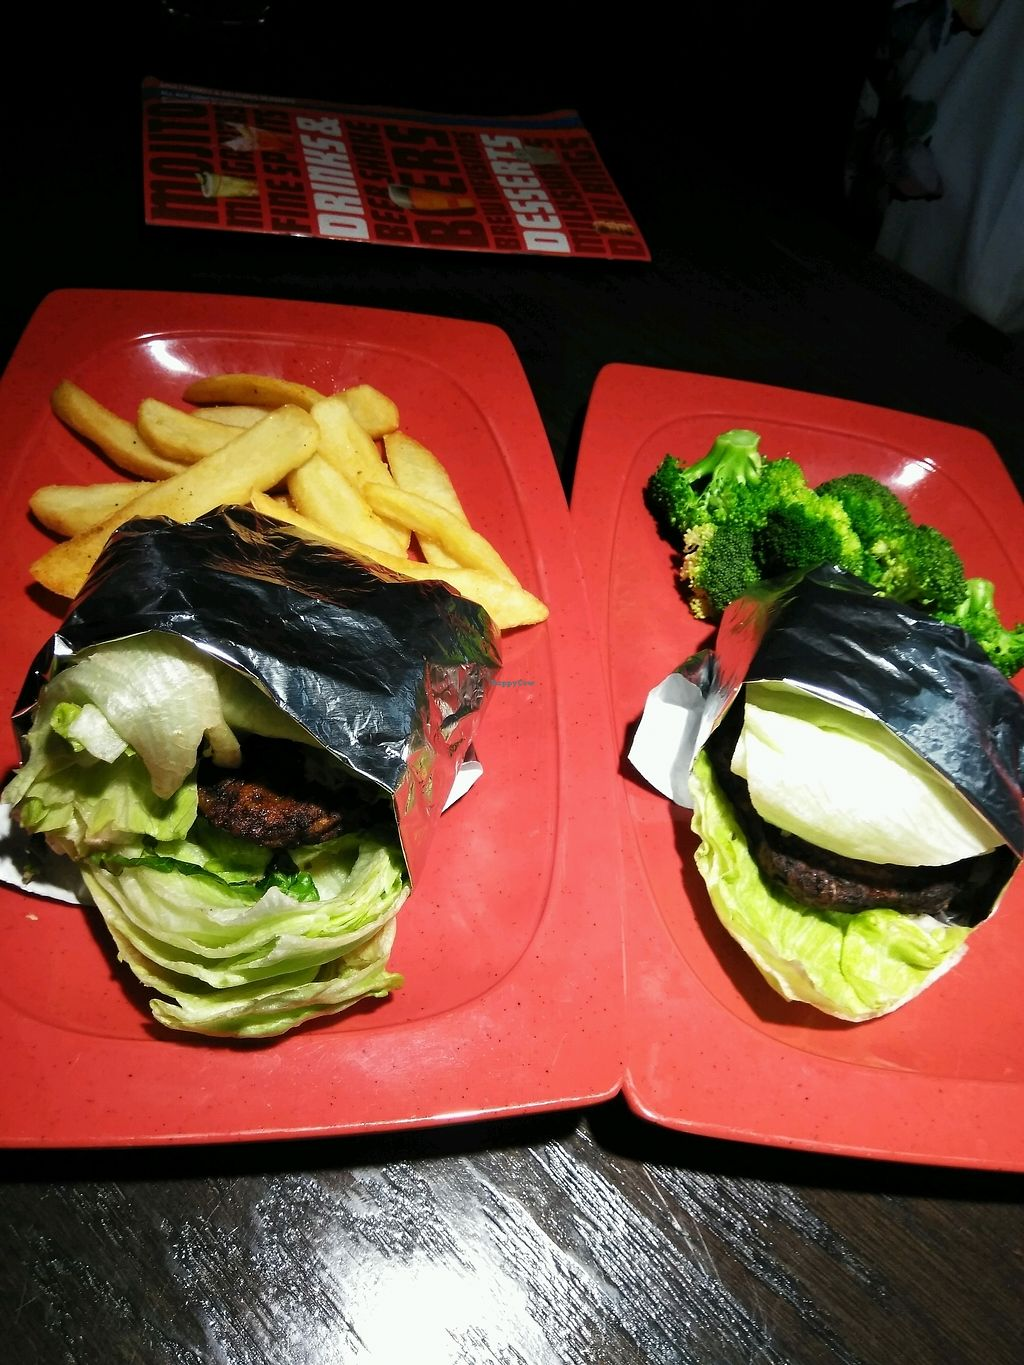 """Photo of Red Robin  by <a href=""""/members/profile/Tonydetra"""">Tonydetra</a> <br/>Vegan Burgers <br/> March 15, 2018  - <a href='/contact/abuse/image/114610/370807'>Report</a>"""